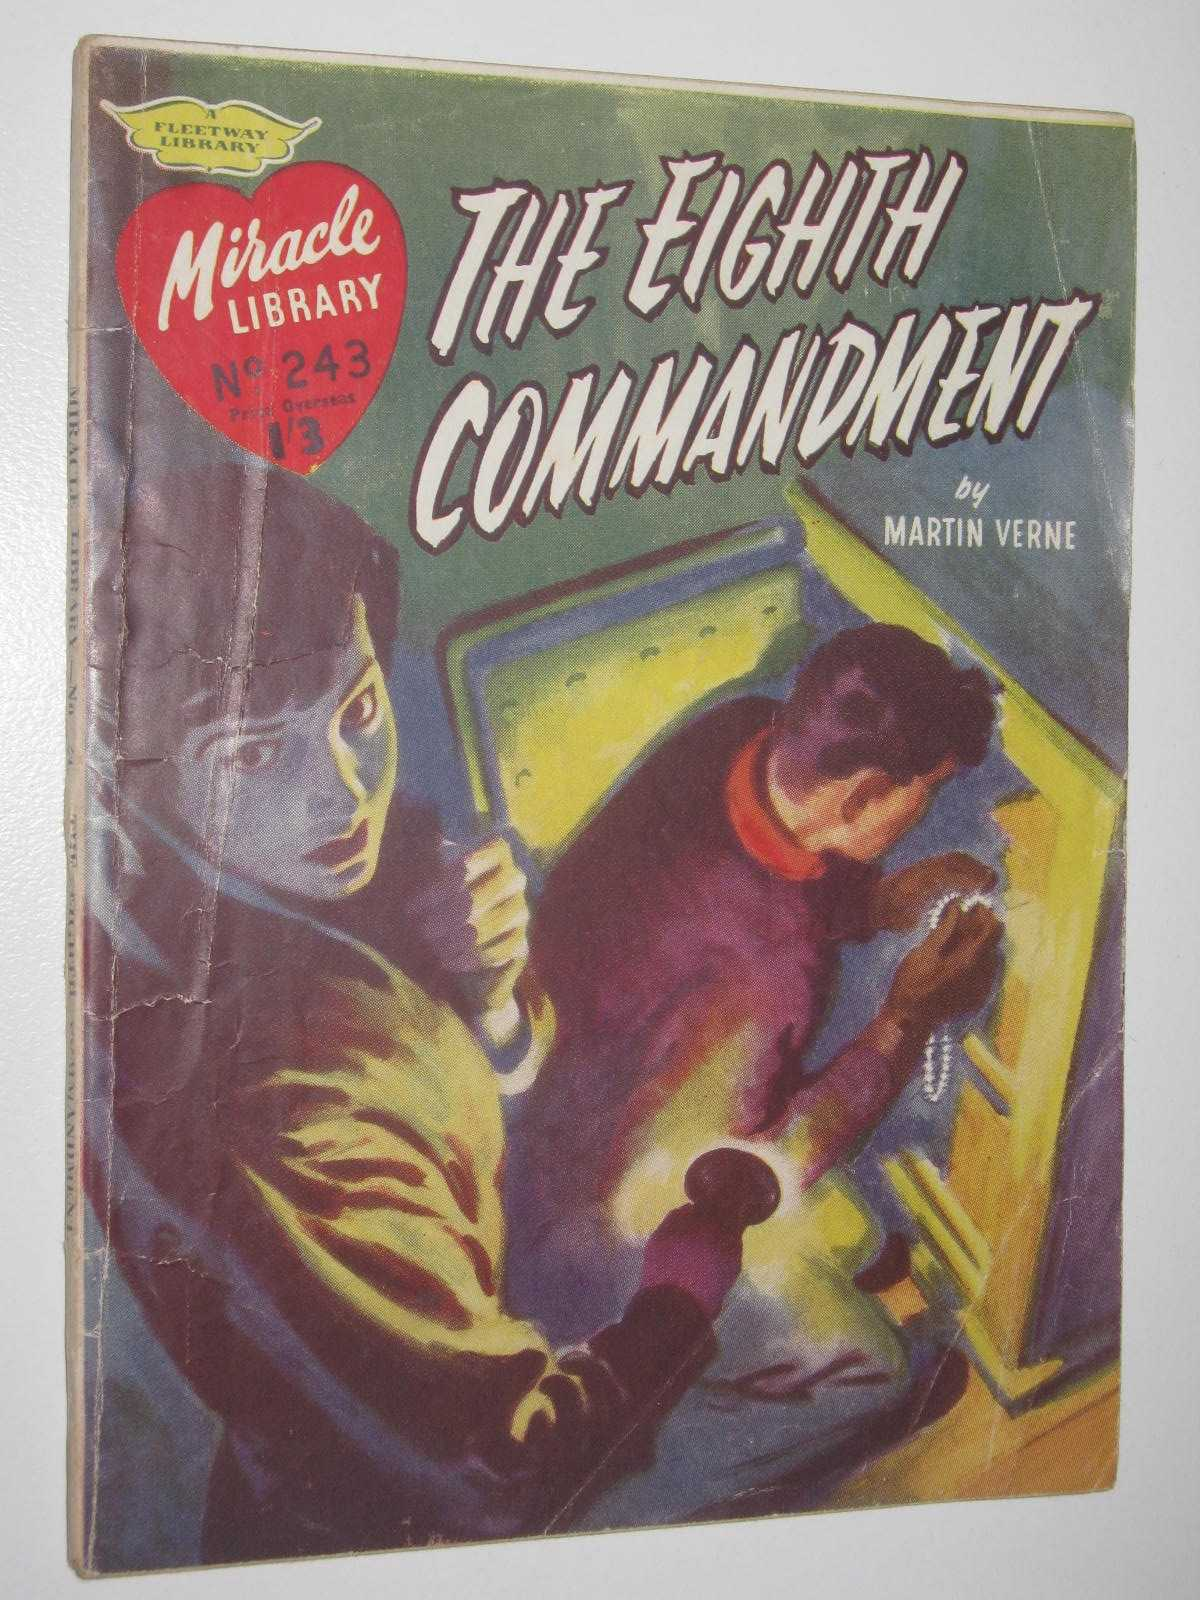 Image for The Eighth Commandment - Miracle Library Series #243